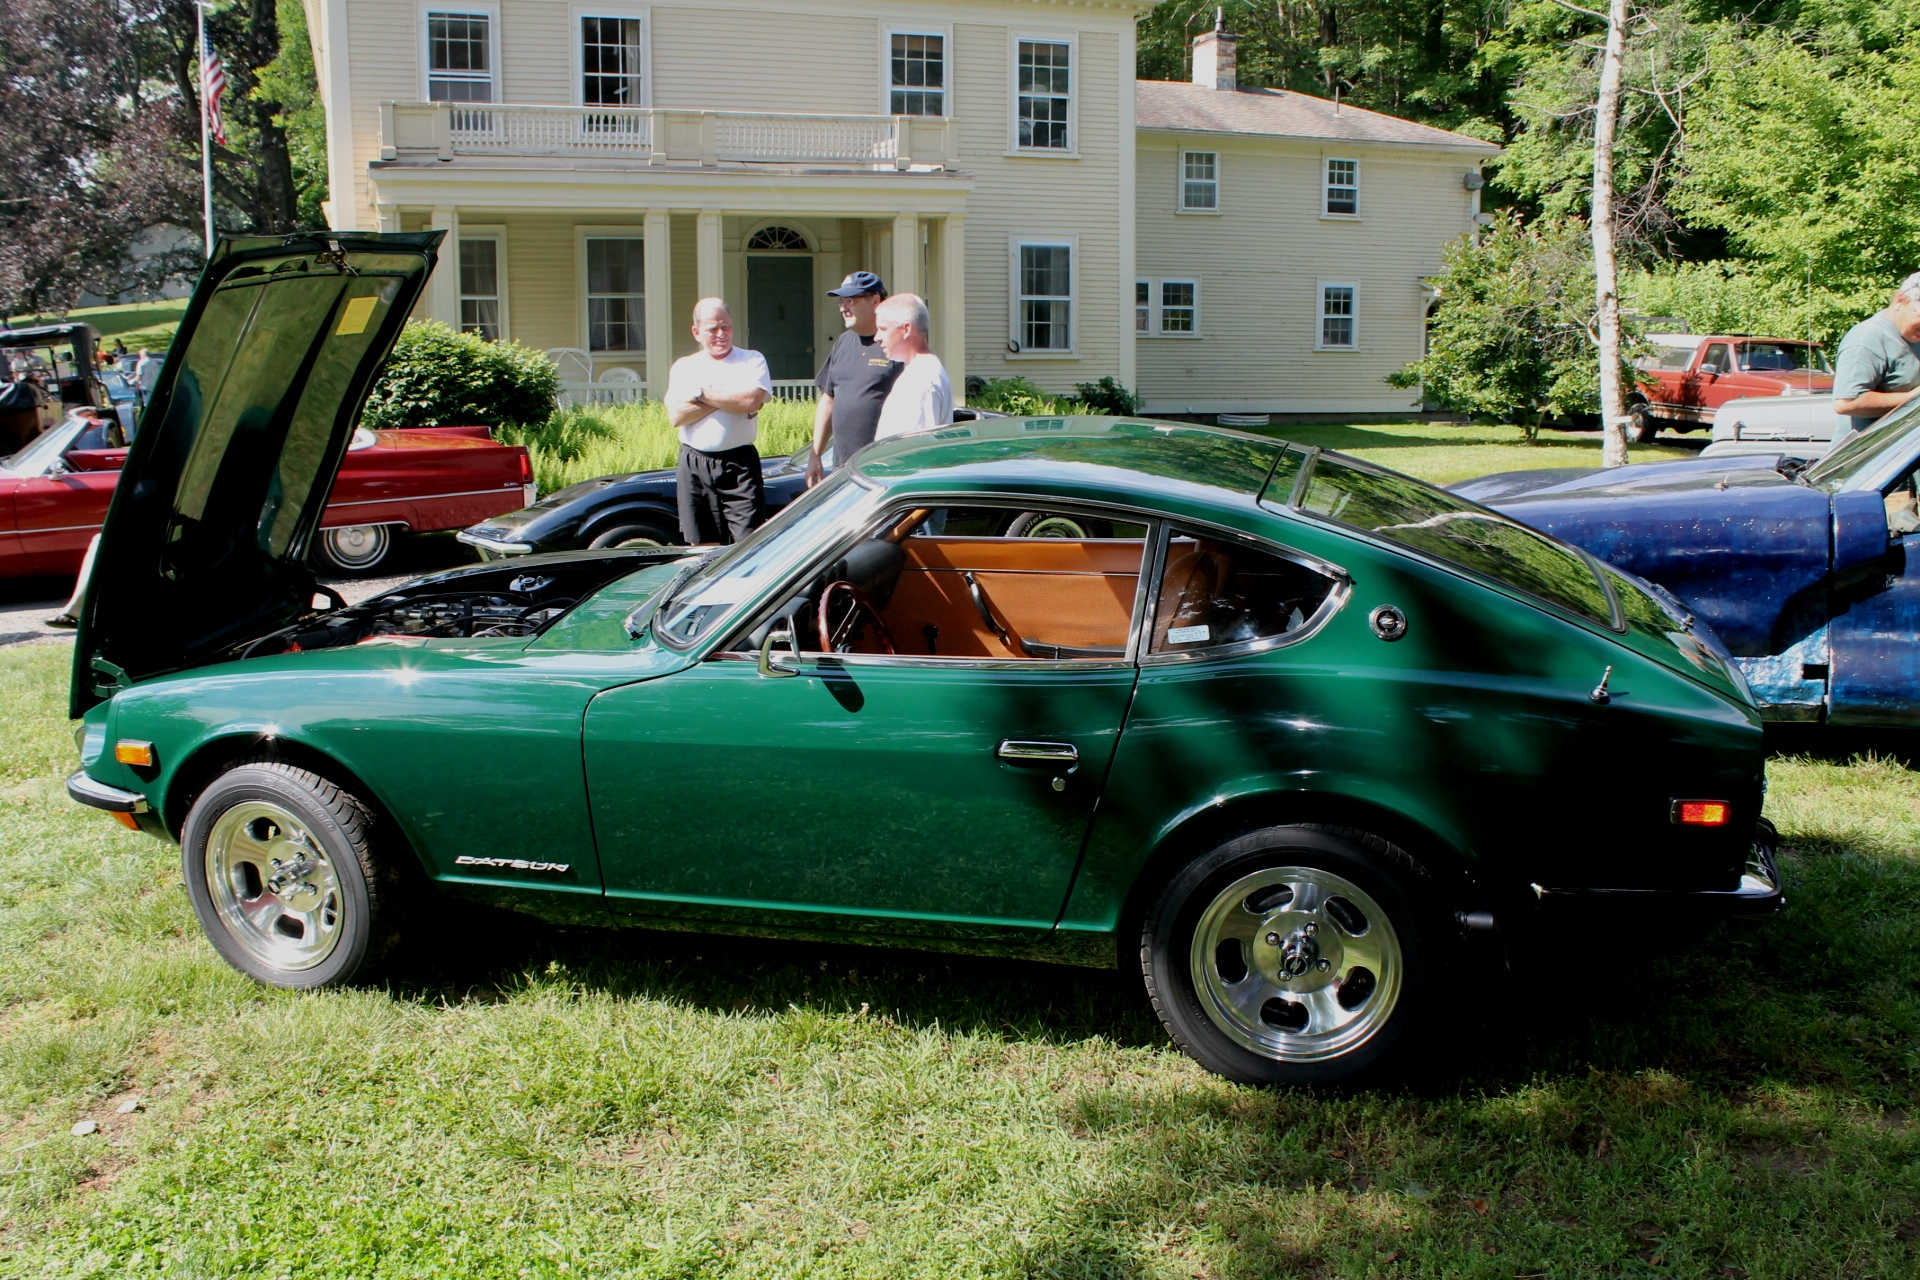 Readying A Datsun 240Z For The 2015 Historique Monte Carlo Rally |